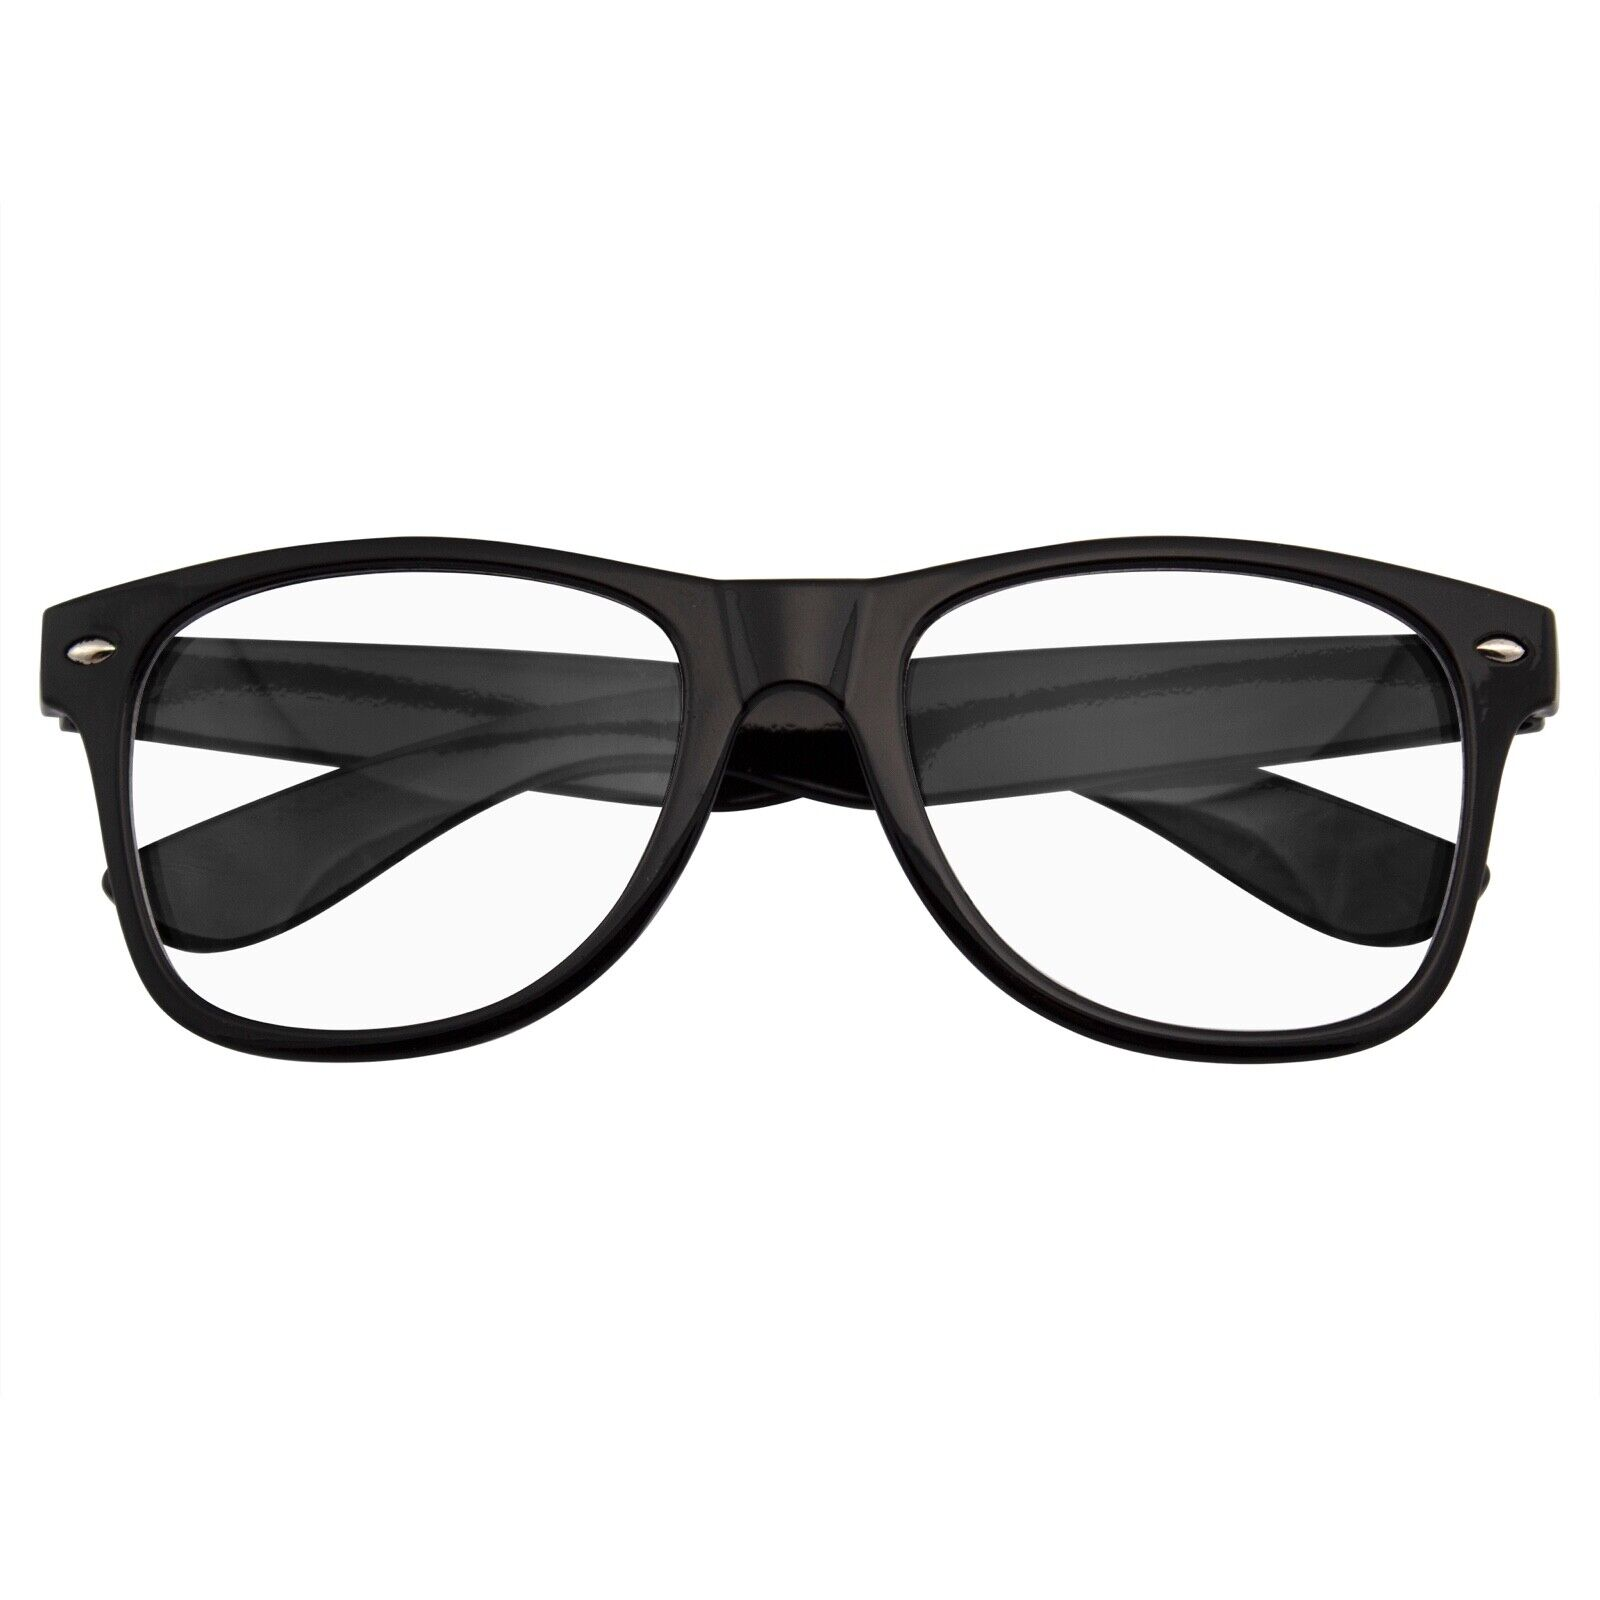 MENS WOMENS NERD BLACK GEEK GLASSES GLOSSY CLEAR LENS Clear